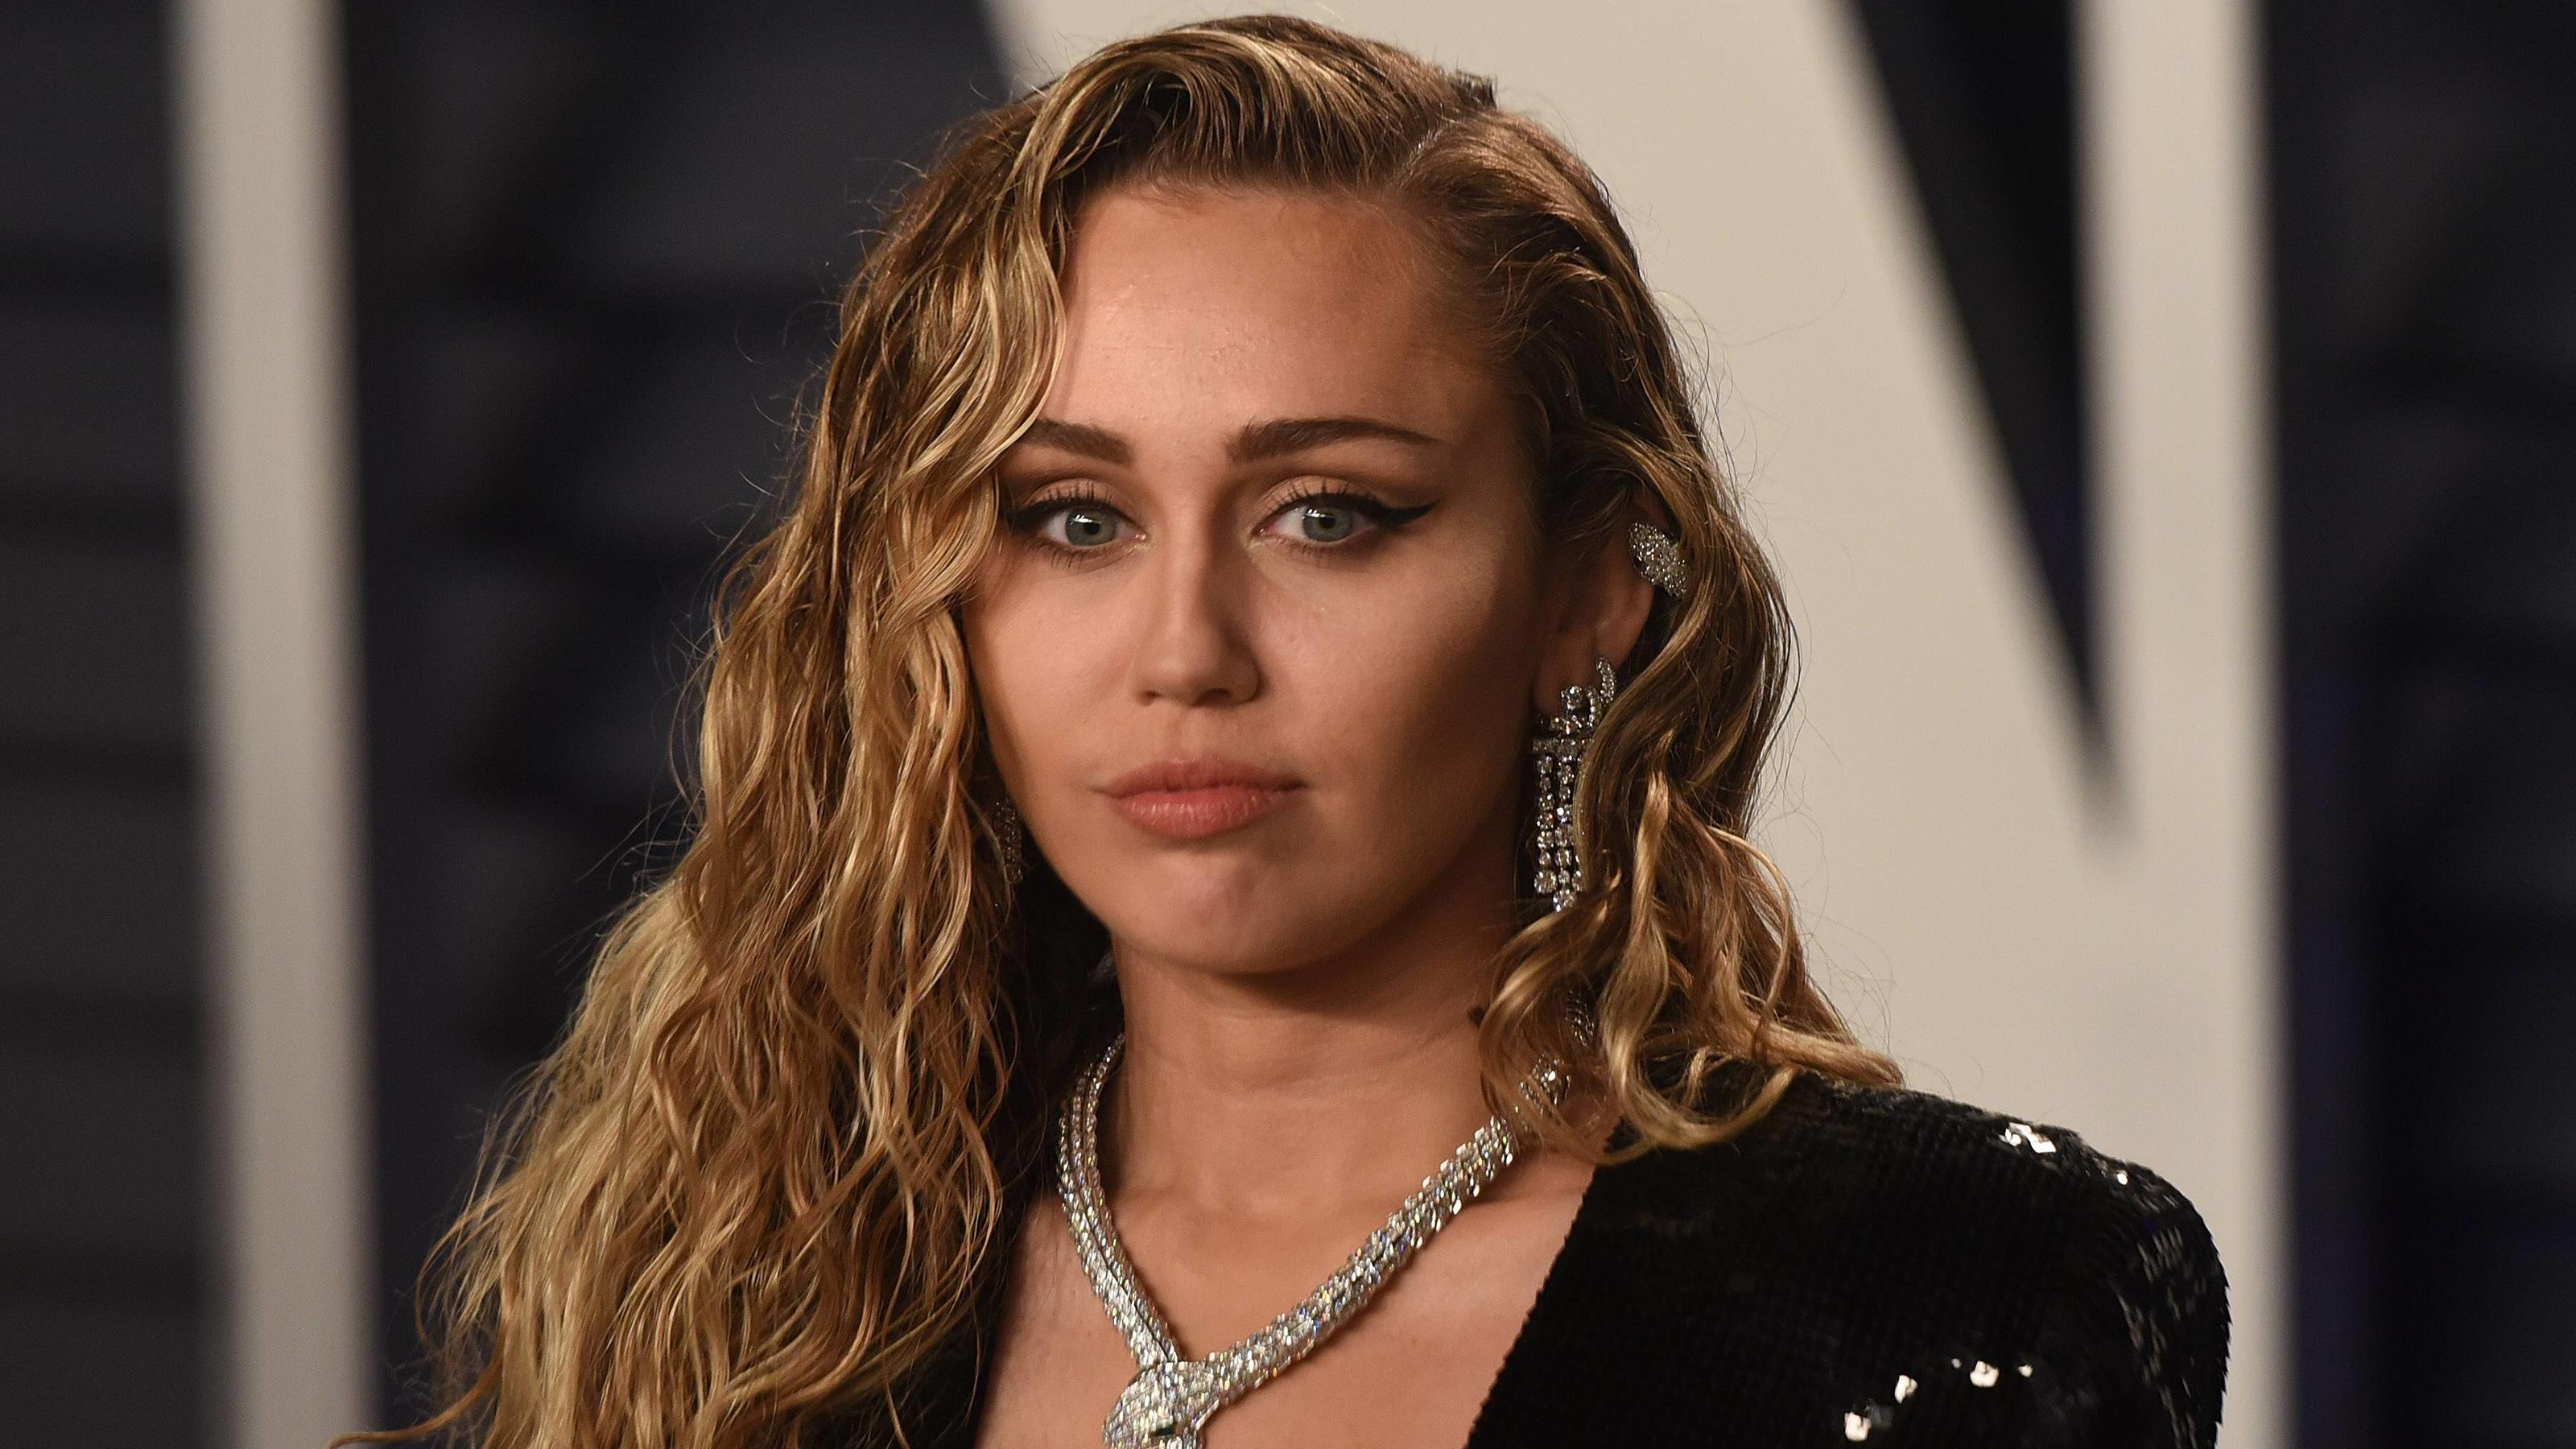 February 24, 2019 - Los Angeles, CA, USA - BEVERLY HILLS, CALIFORNIA - FEBRUARY 24: Miley Cyrus attends 2019 Vanity Fair Oscar Party at Wallis Annenberg Center for the Performing Arts on February 24, 2019 in Beverly Hills, California. Photo: imageSPA